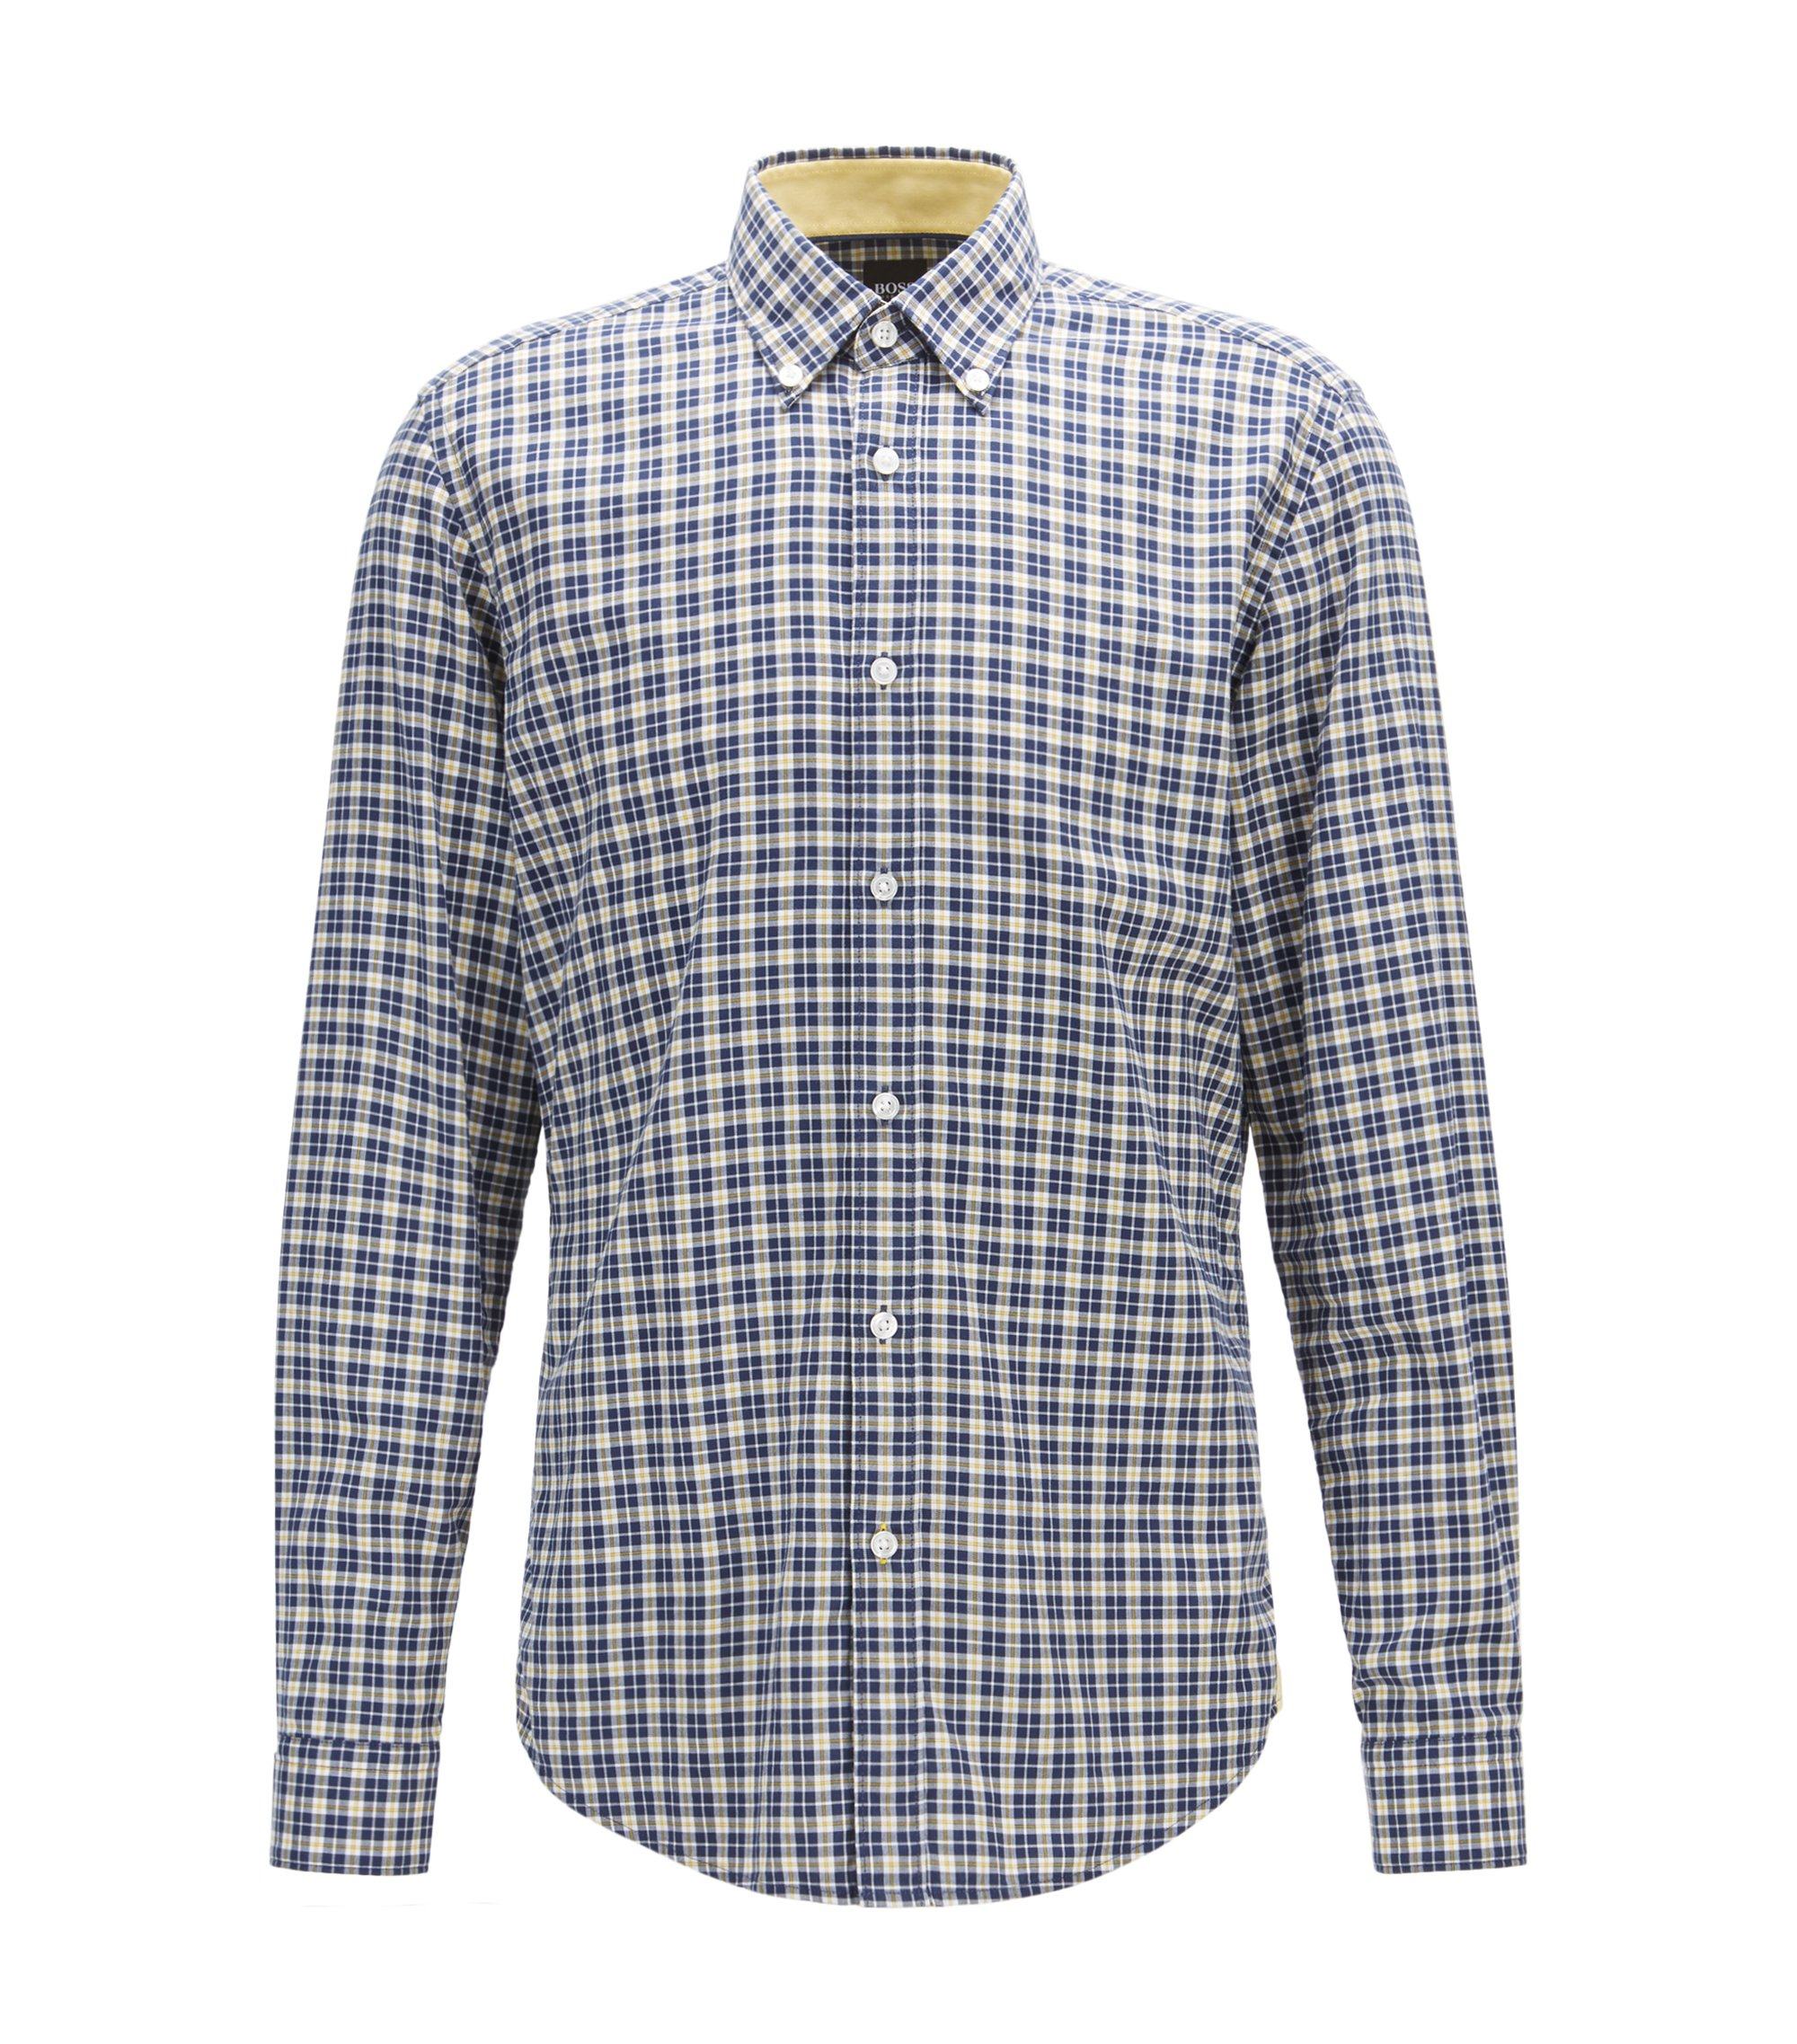 Camicia regular fit in twill di cotone a quadri, Blu